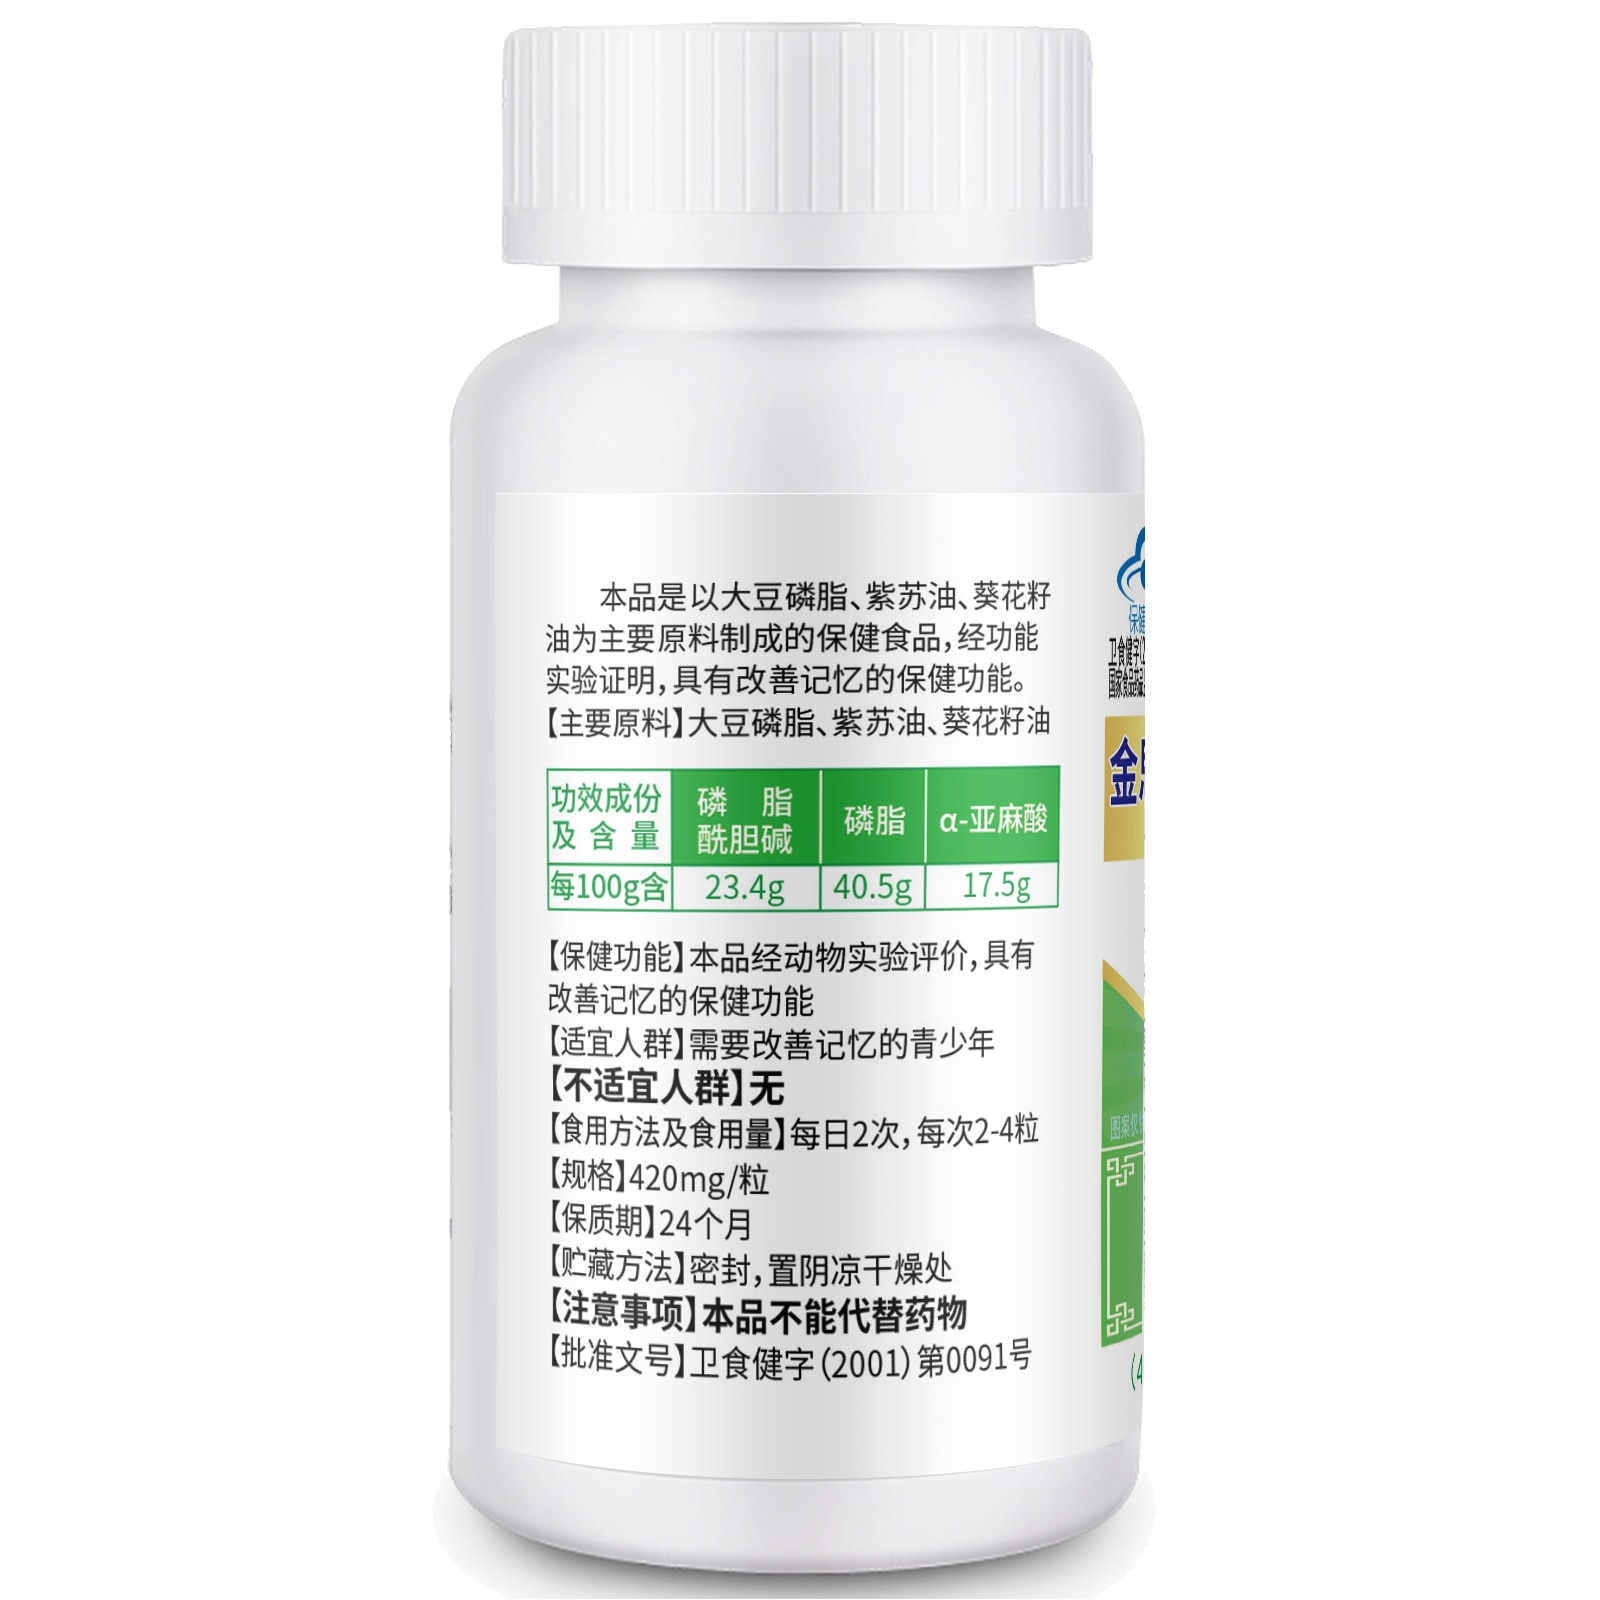 Jinsili Softgels Soy Lecithin Perilla Oil Sunflower Oil Memory Support Brain Health Relieve Stress for Teens and Seniors